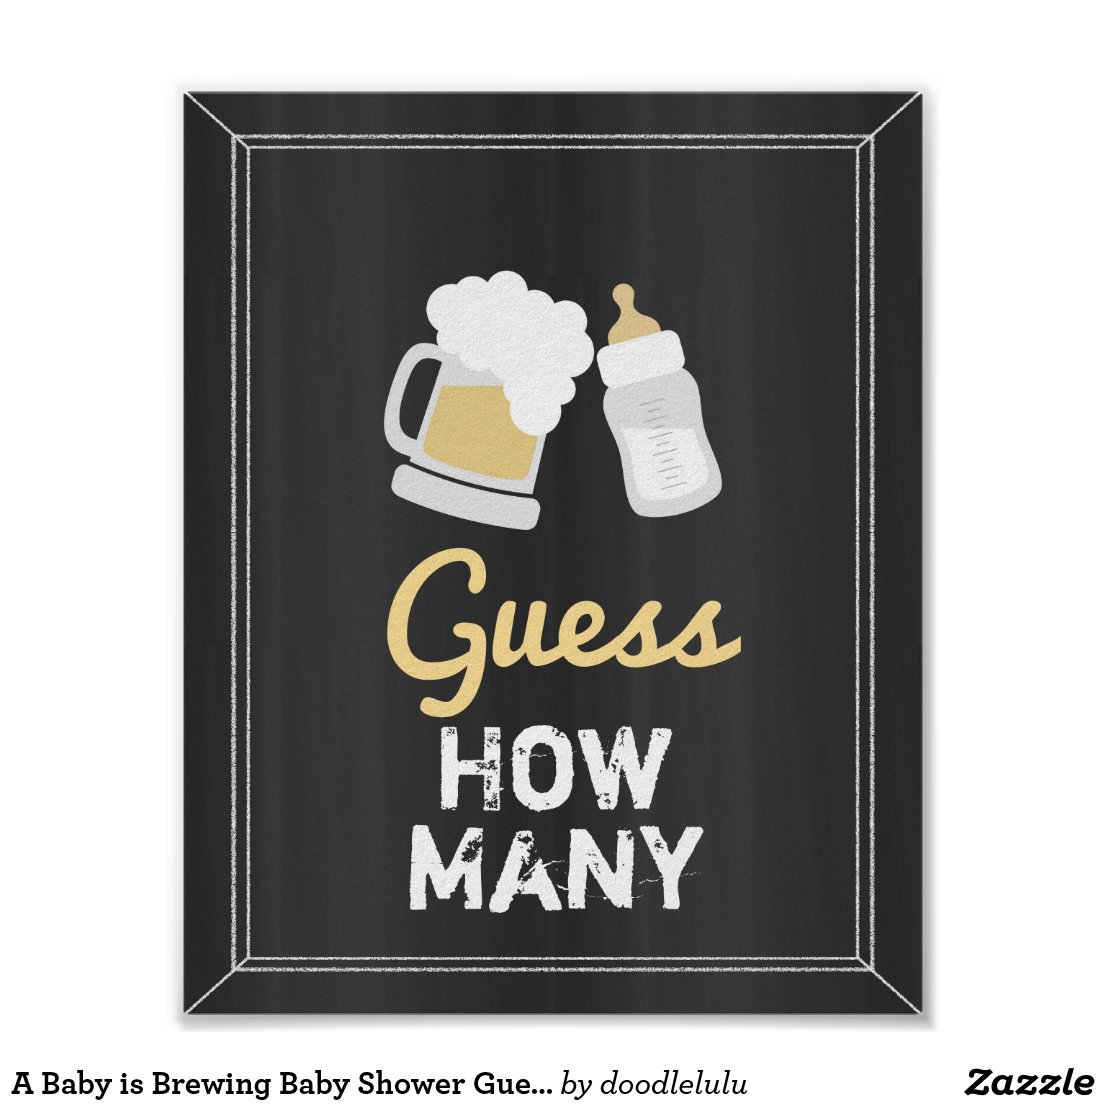 A Baby is Brewing Baby Shower Guess How Many Game Poster